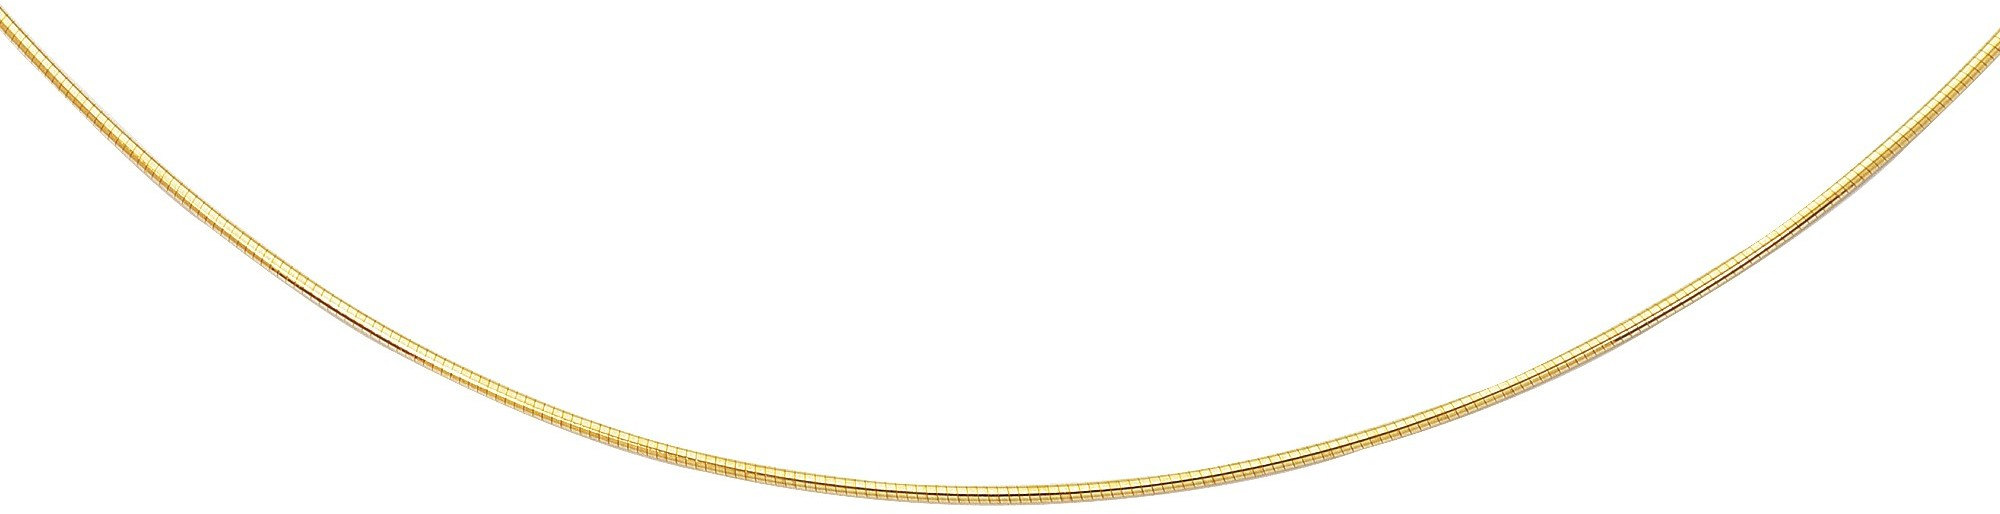 "17"" 14K Yellow Gold 1.5mm (0.06"") Polish Diamond Cut Round Omega Necklace w/ Screw Off Lock & Pear Shape Clasp"